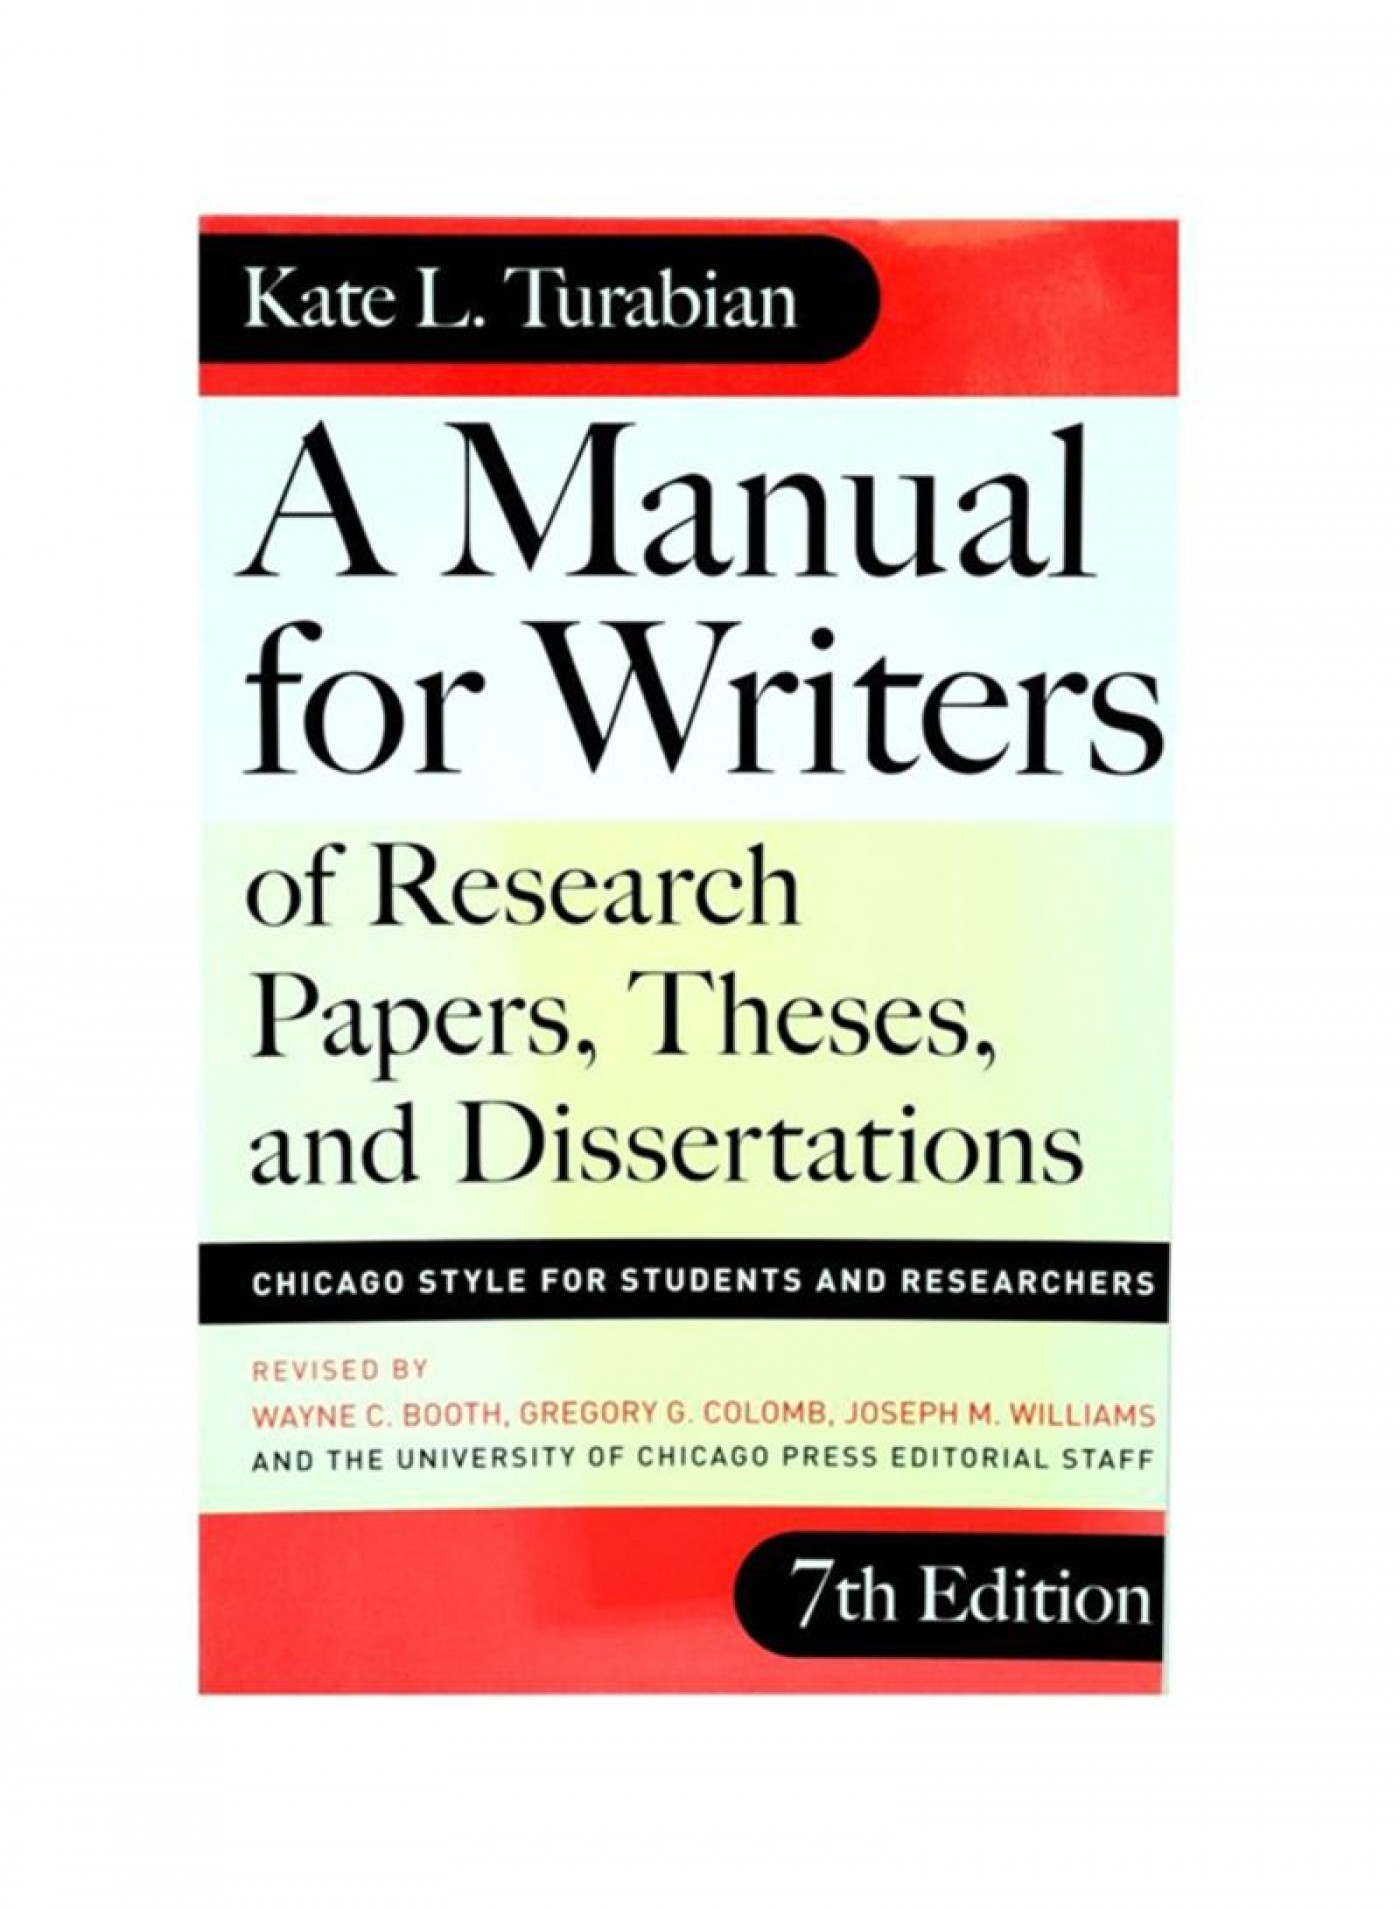 021 Research Paper N21270079a 1 Manual For Writers Of Papers Theses And Magnificent Dissertations A Amazon 9th Edition 8th 13 1400